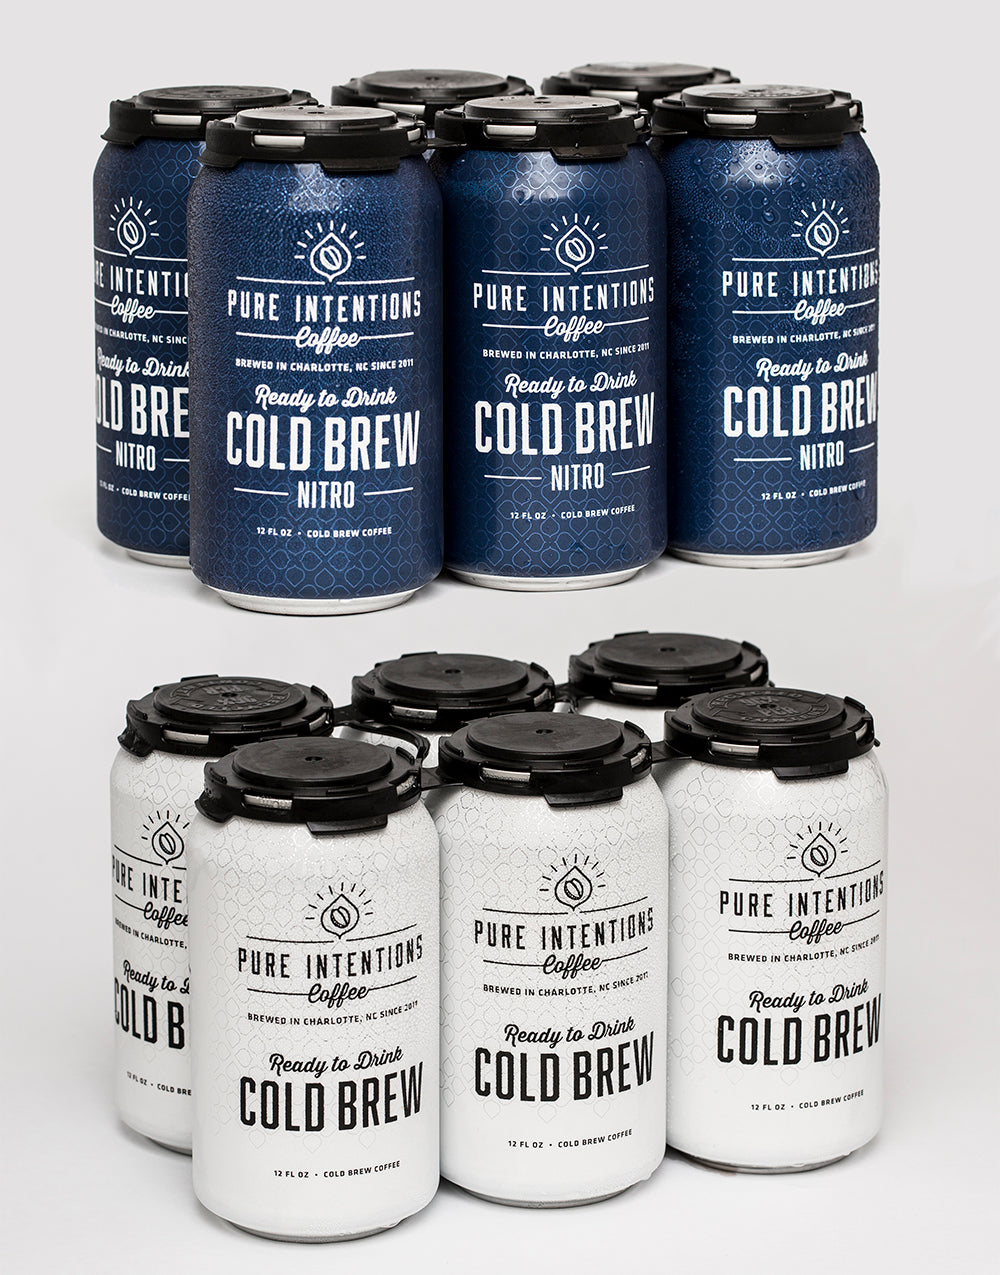 Case of Cold Brew Cans - Pickup or Local Delivery